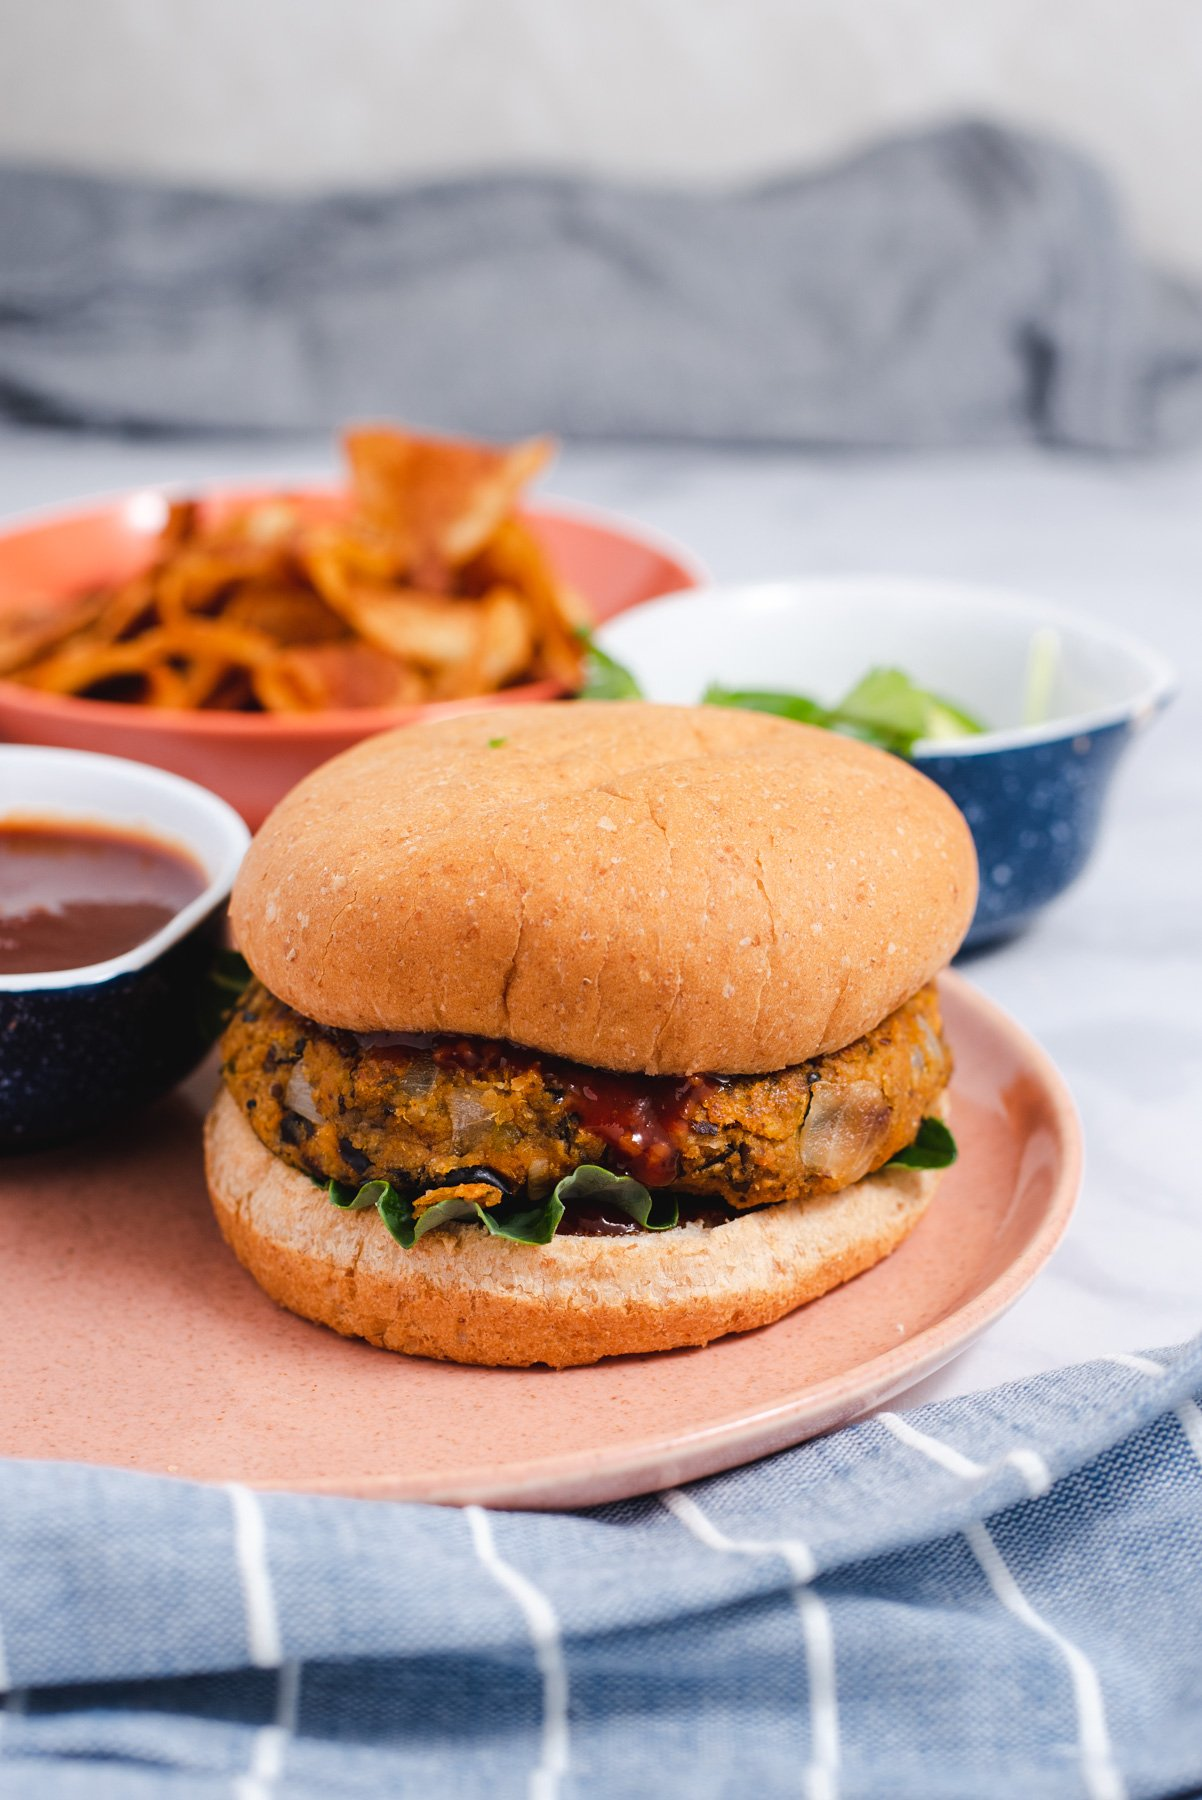 Sweet potato burger on a bun next to bowls filled with chips and barbecue sauce